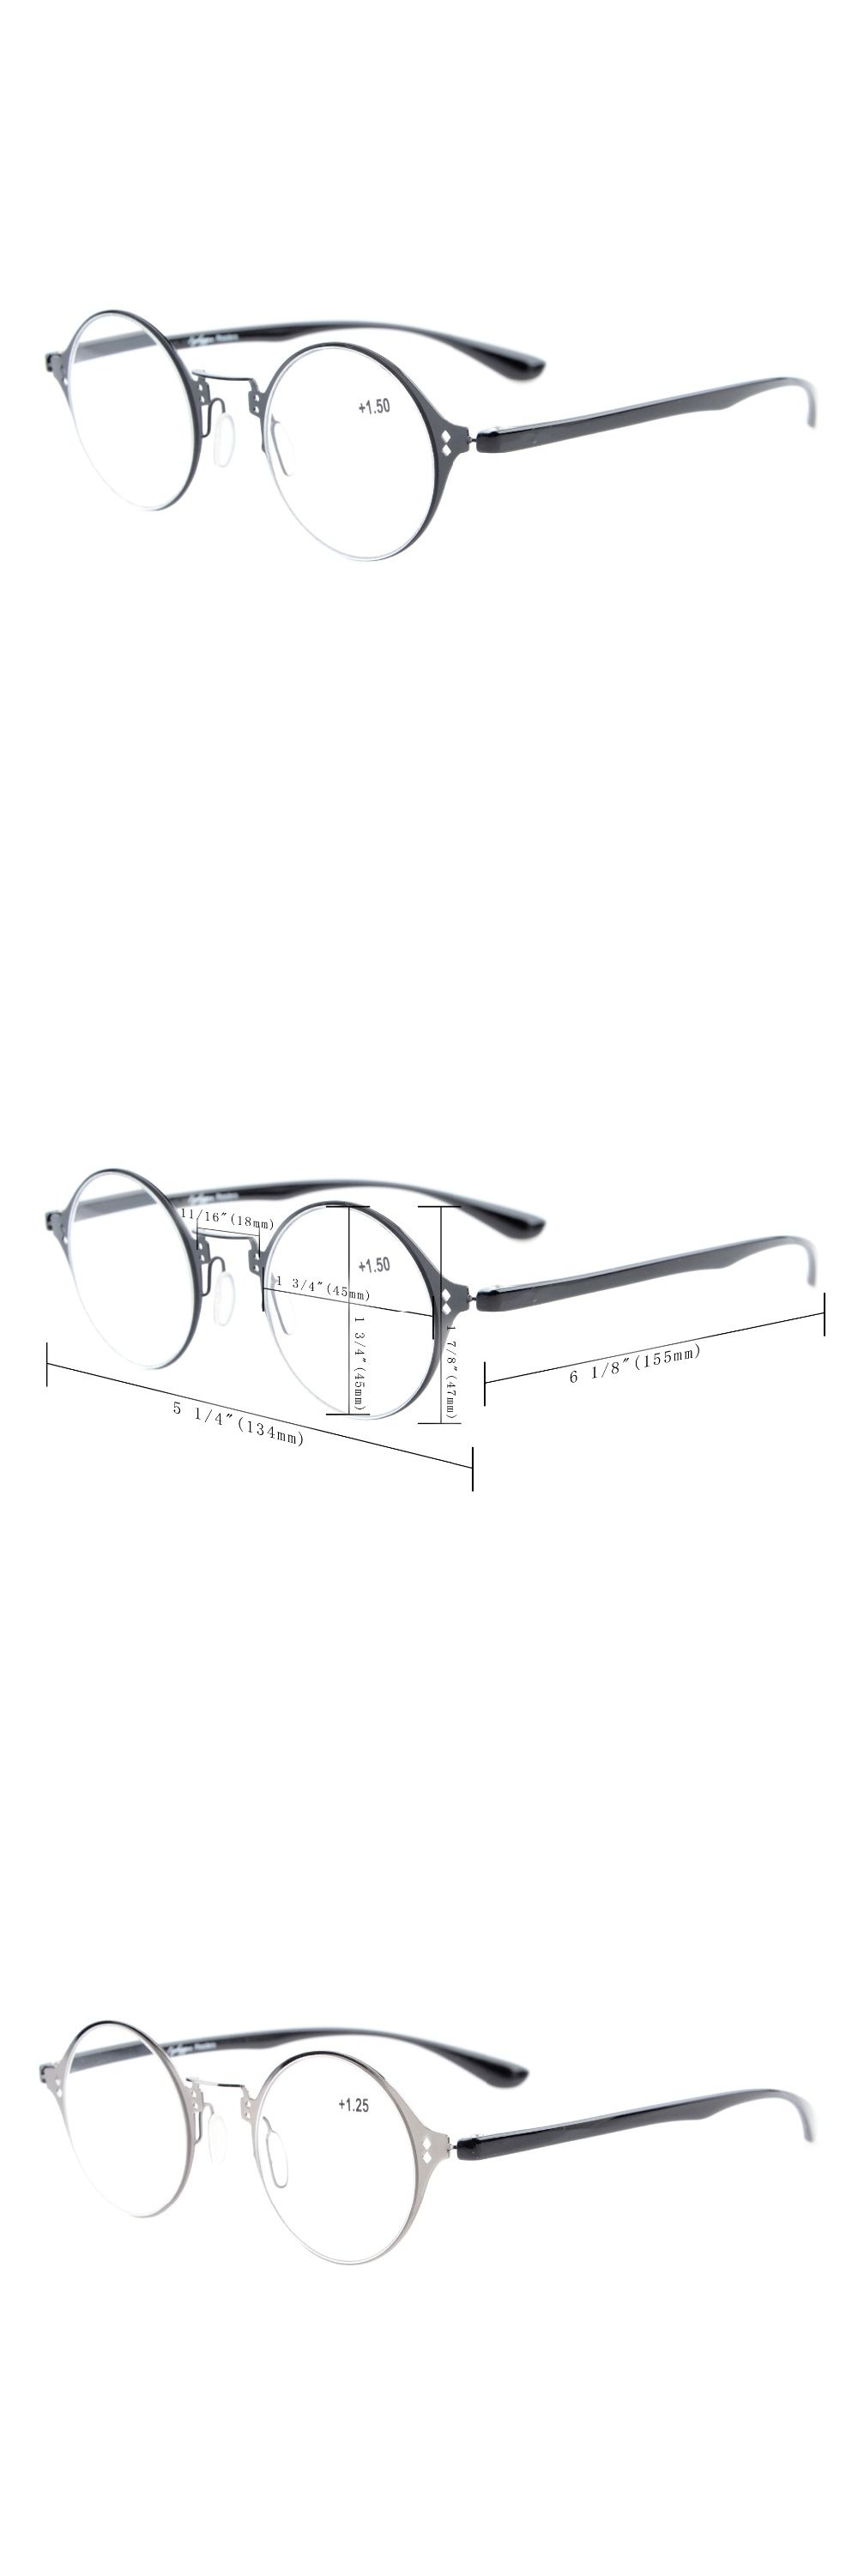 5dace2c12c7 R12618 Eyekepper Lightweight Flex Round Reading Glasses Unique Stylish Crystal  Clear Vision +0.50--